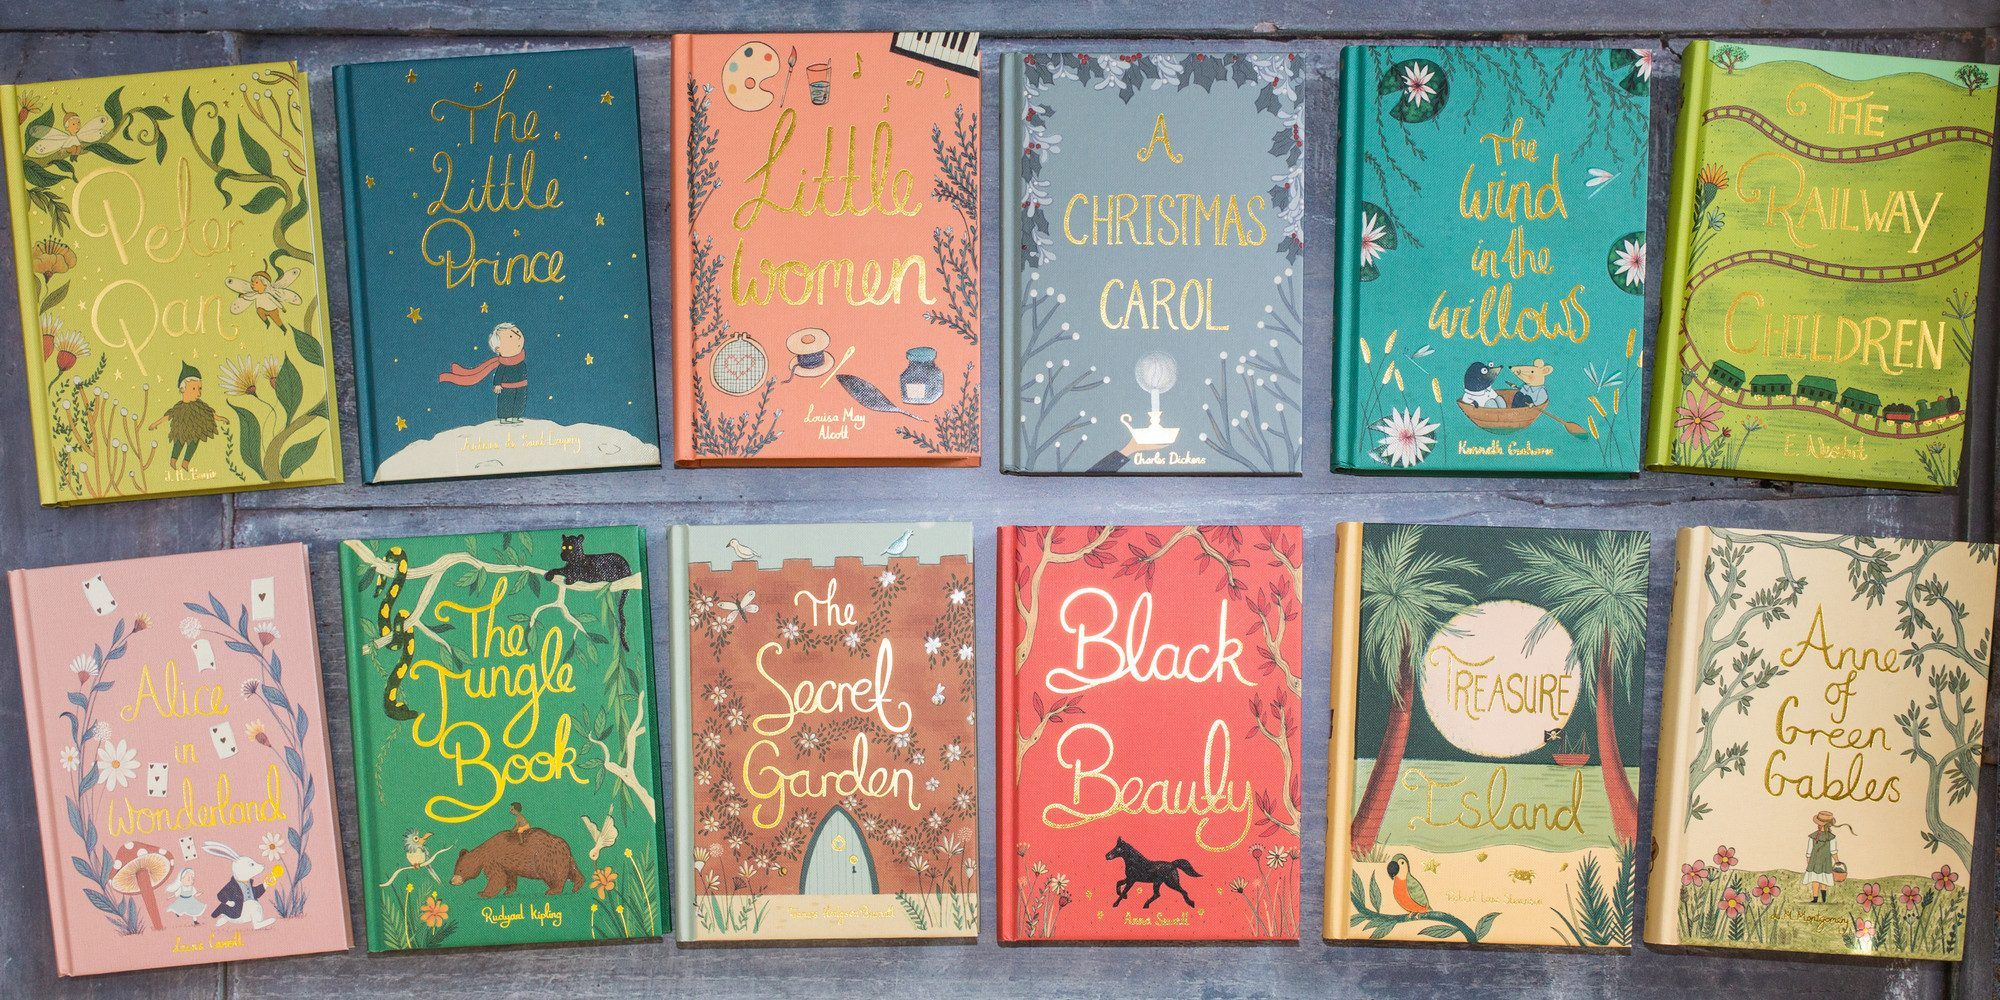 Wordsworth Have Released A Lovely And Affordable Set Of Classics Children S Novels In Their Collector S Editions Featurin Childrens Novels Classic Books Books